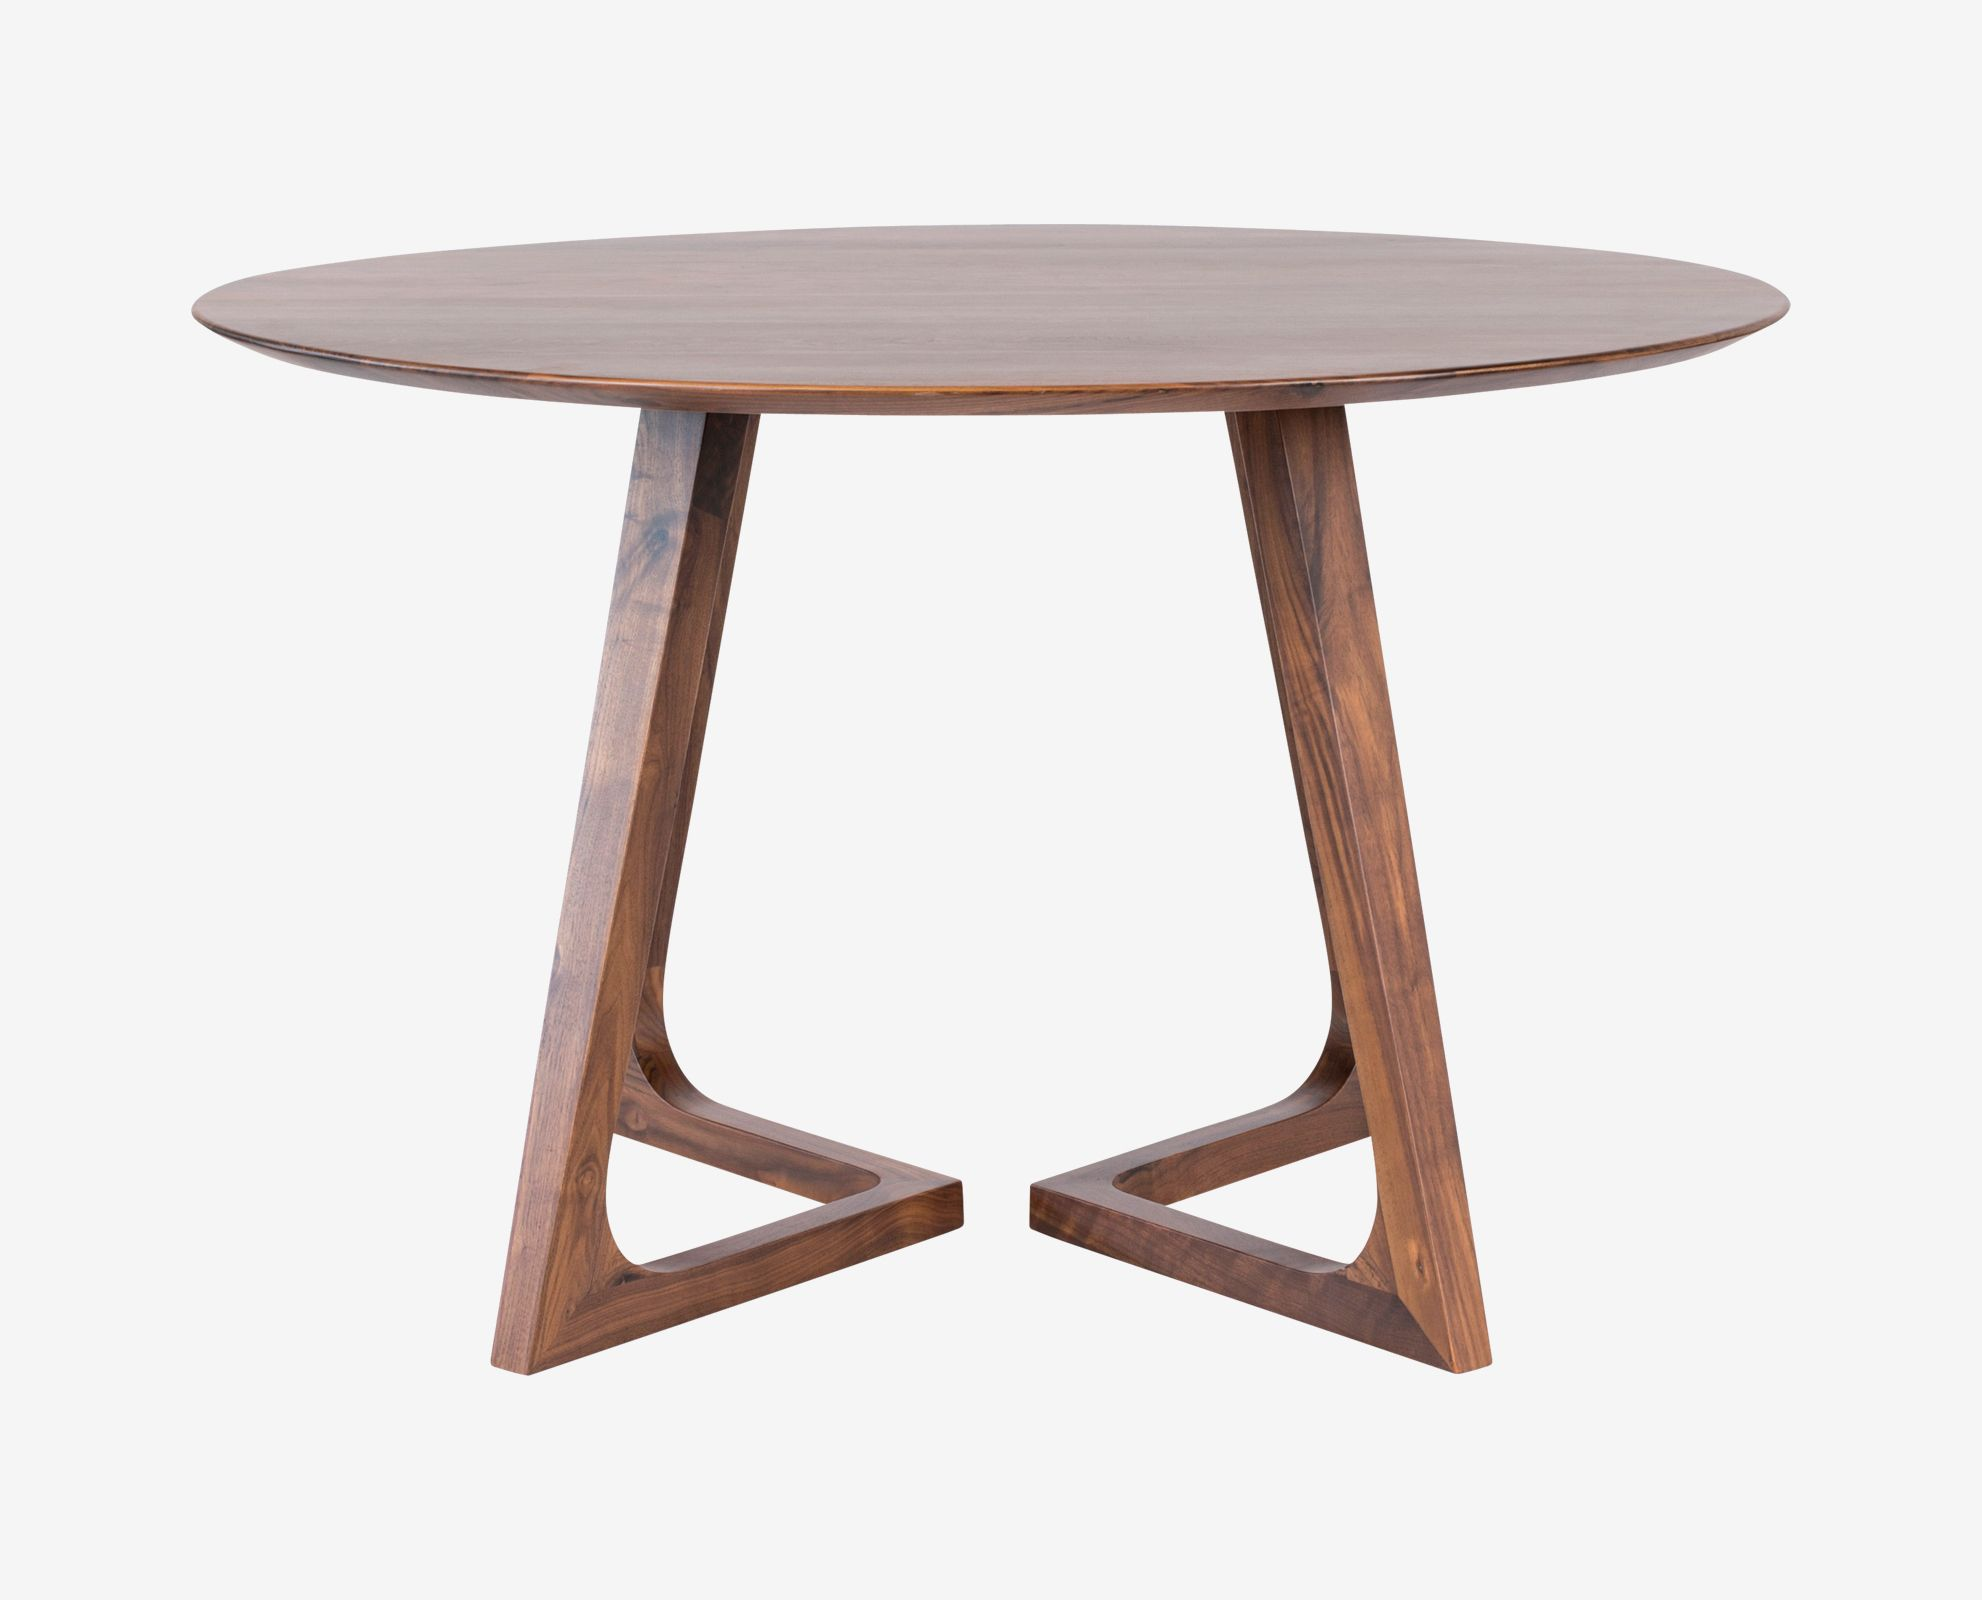 Dania   The Cress Round Dining Table Will Nurture Your Inner Perfectionist  With Its Equal Focus